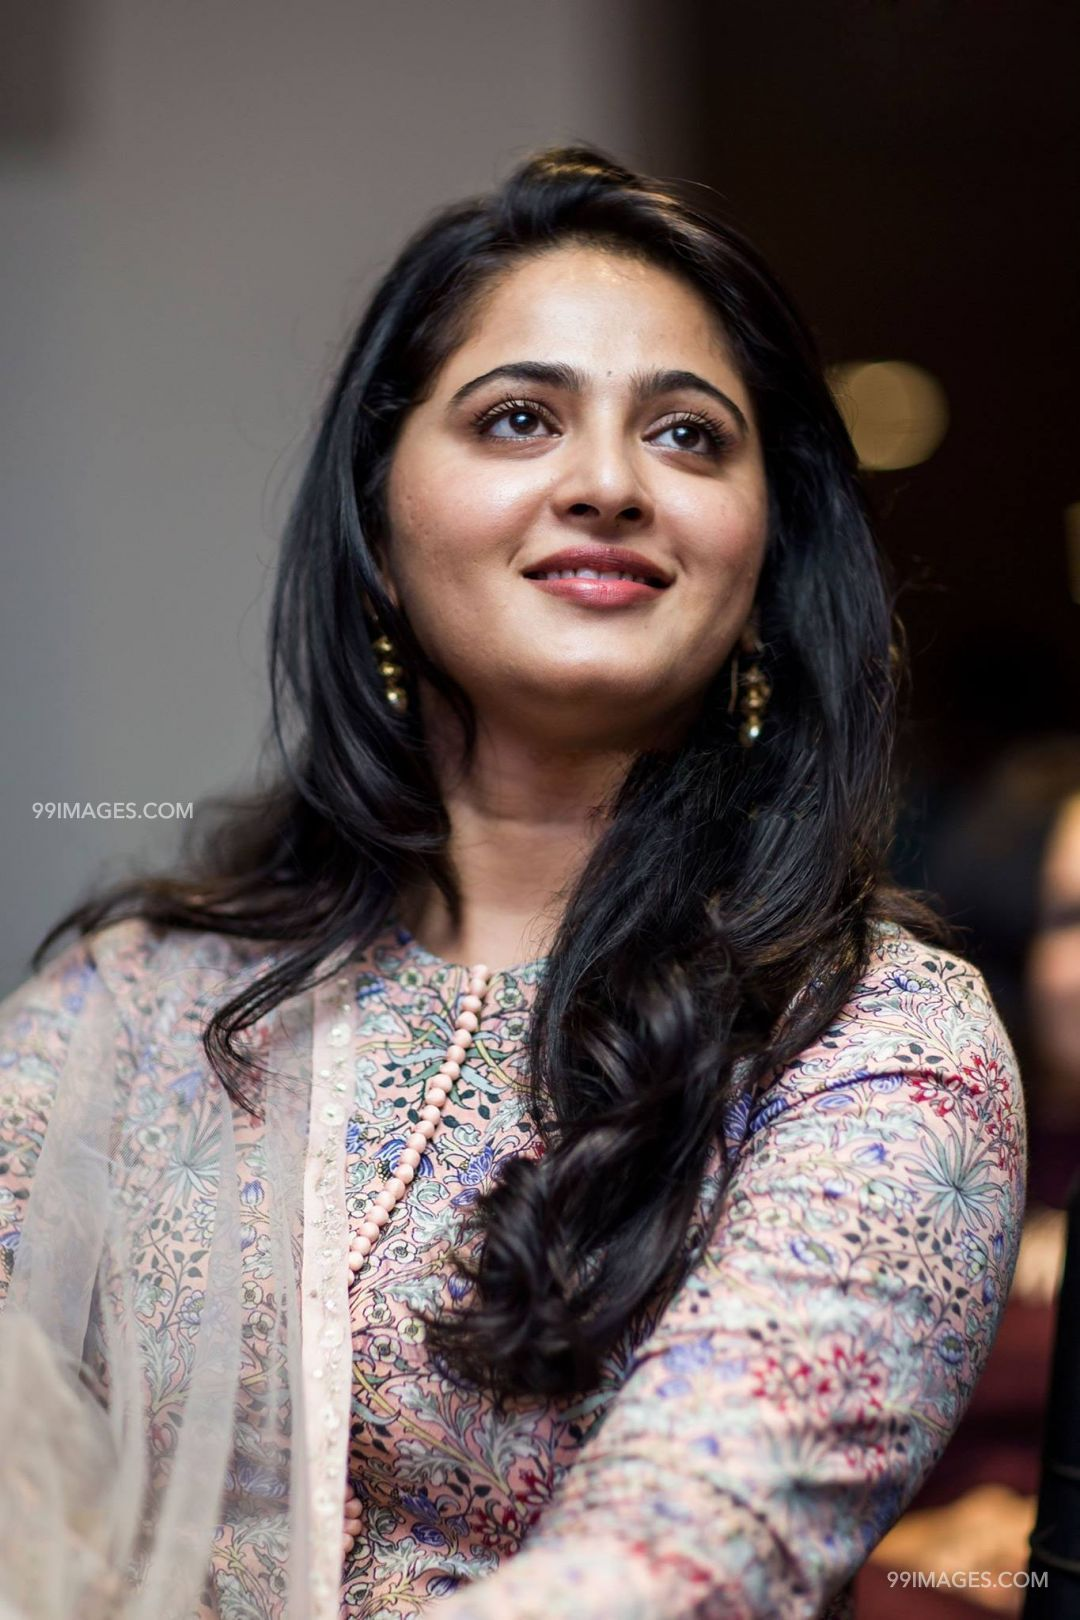 Anushka Shetty Beautiful HD Photoshoot Stills (1080p) (3622) - Anushka Shetty